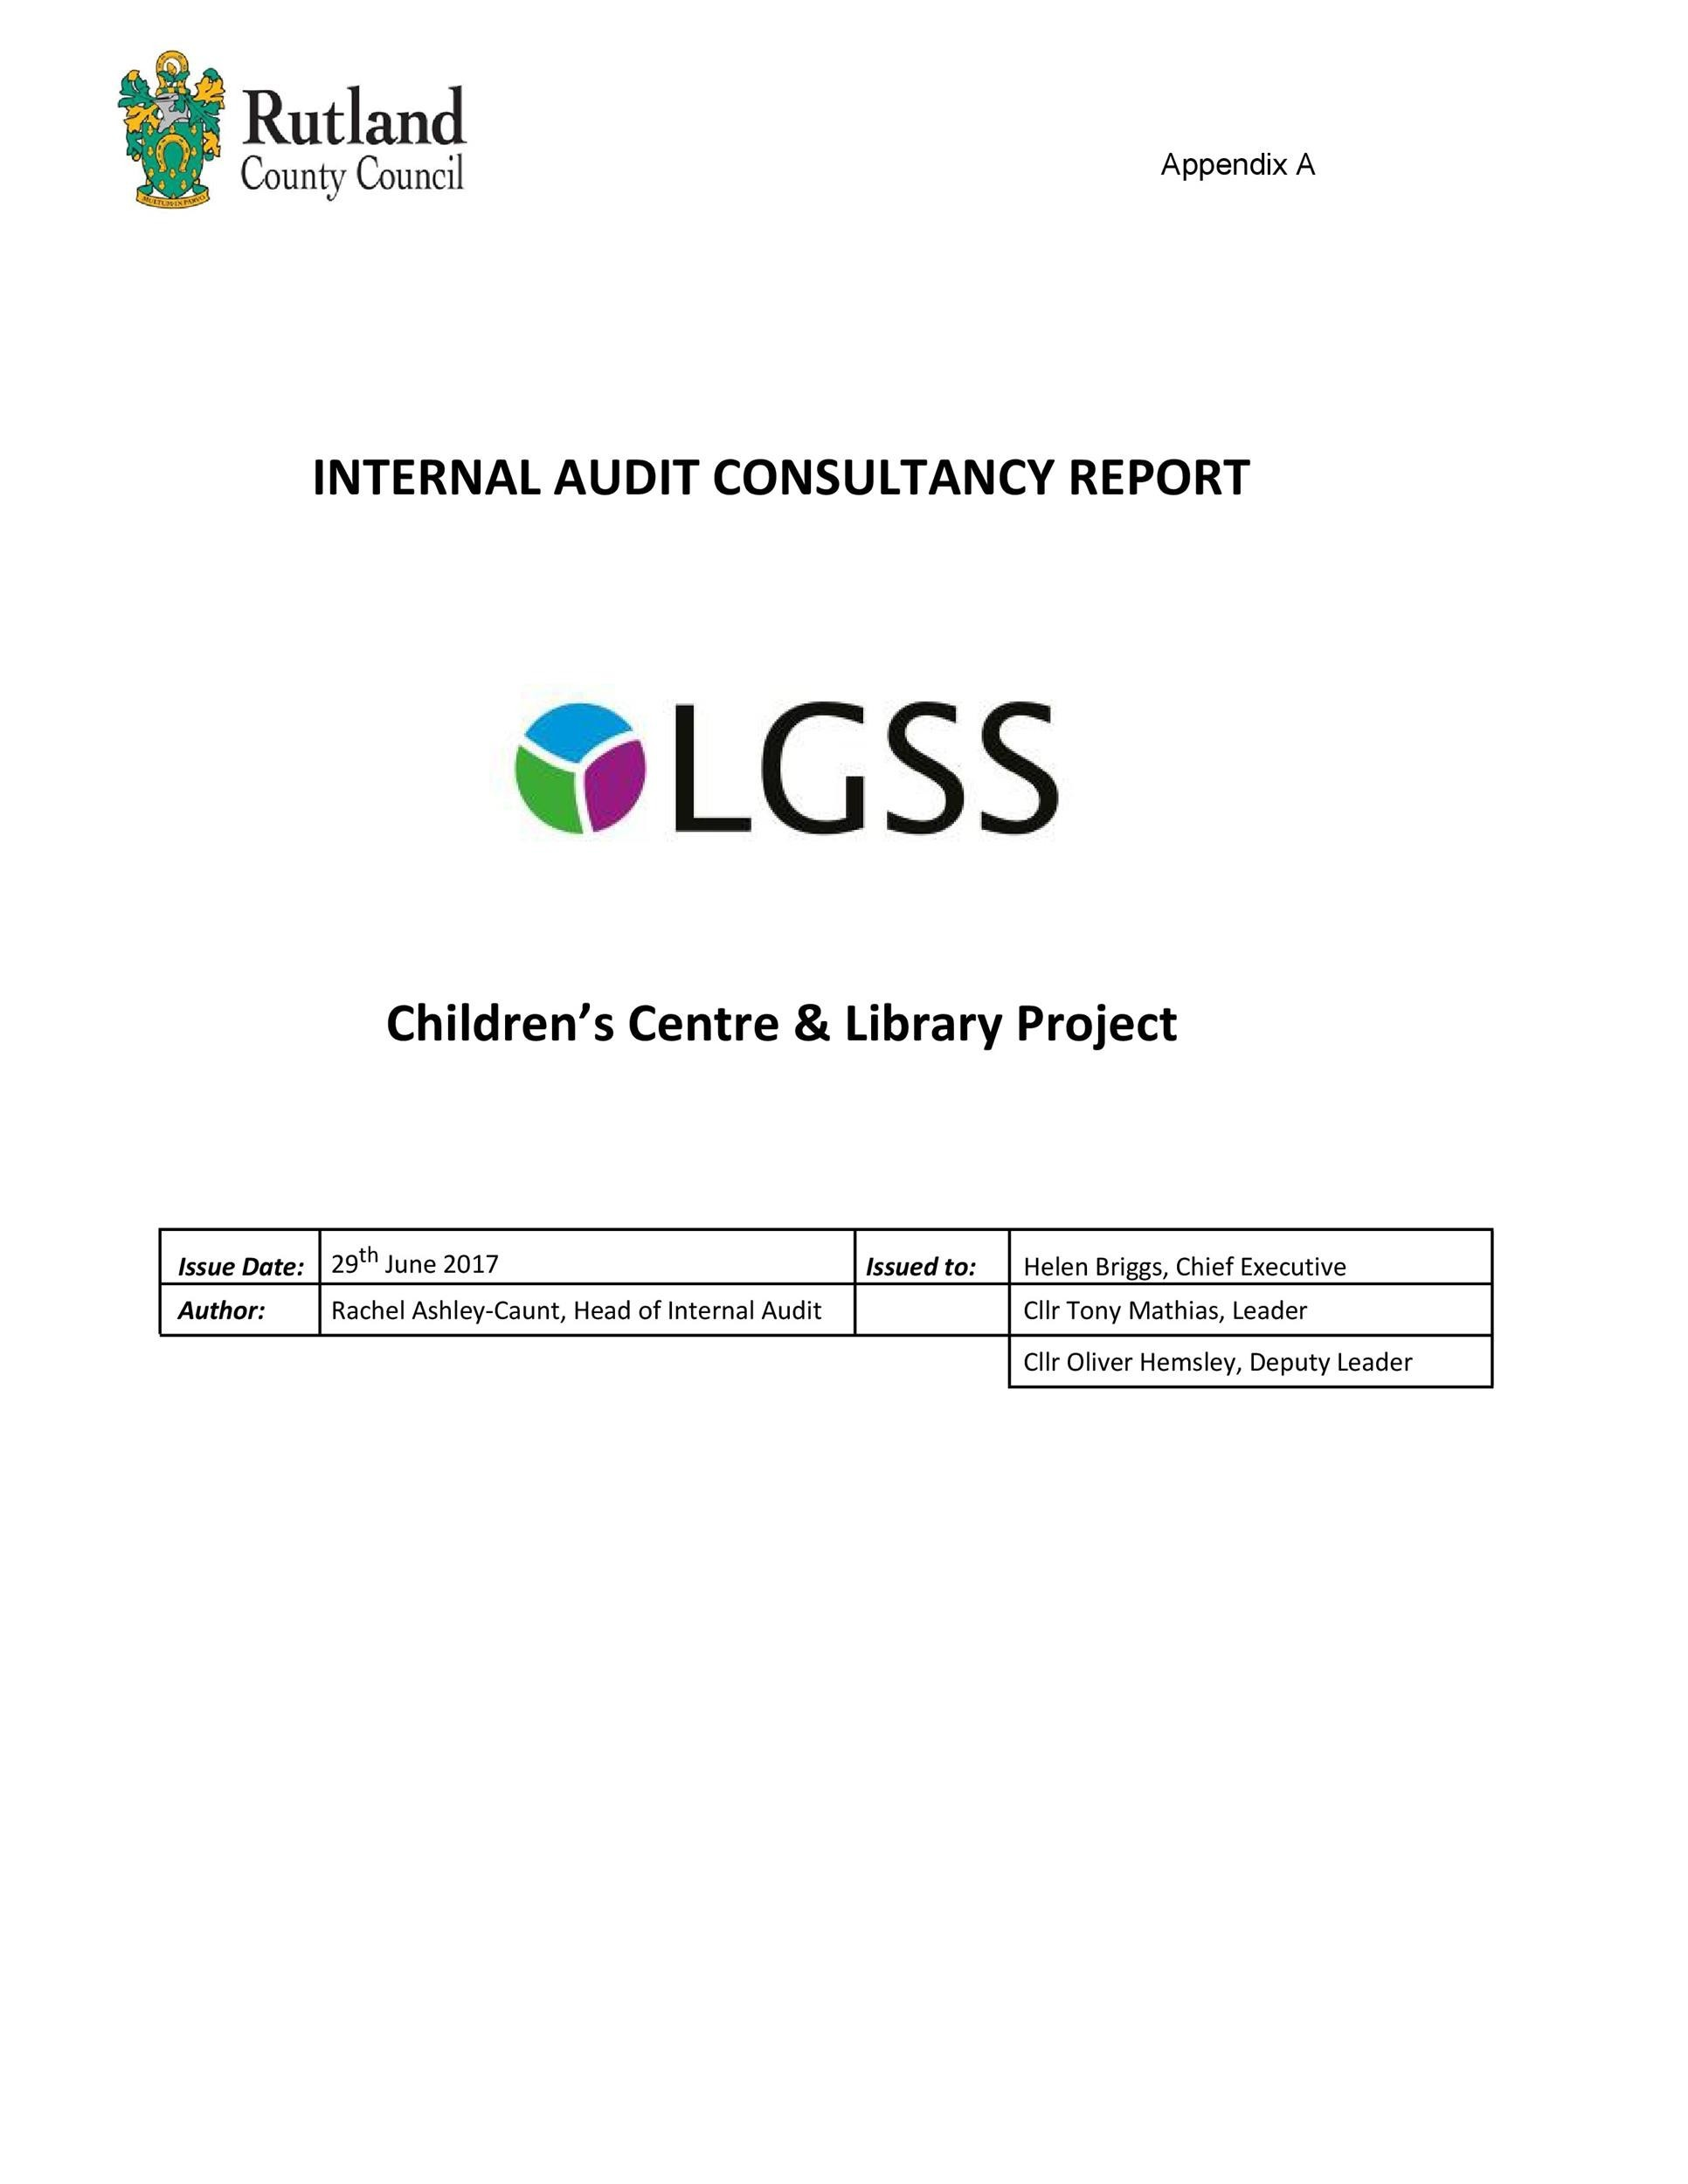 Free consulting report template 08